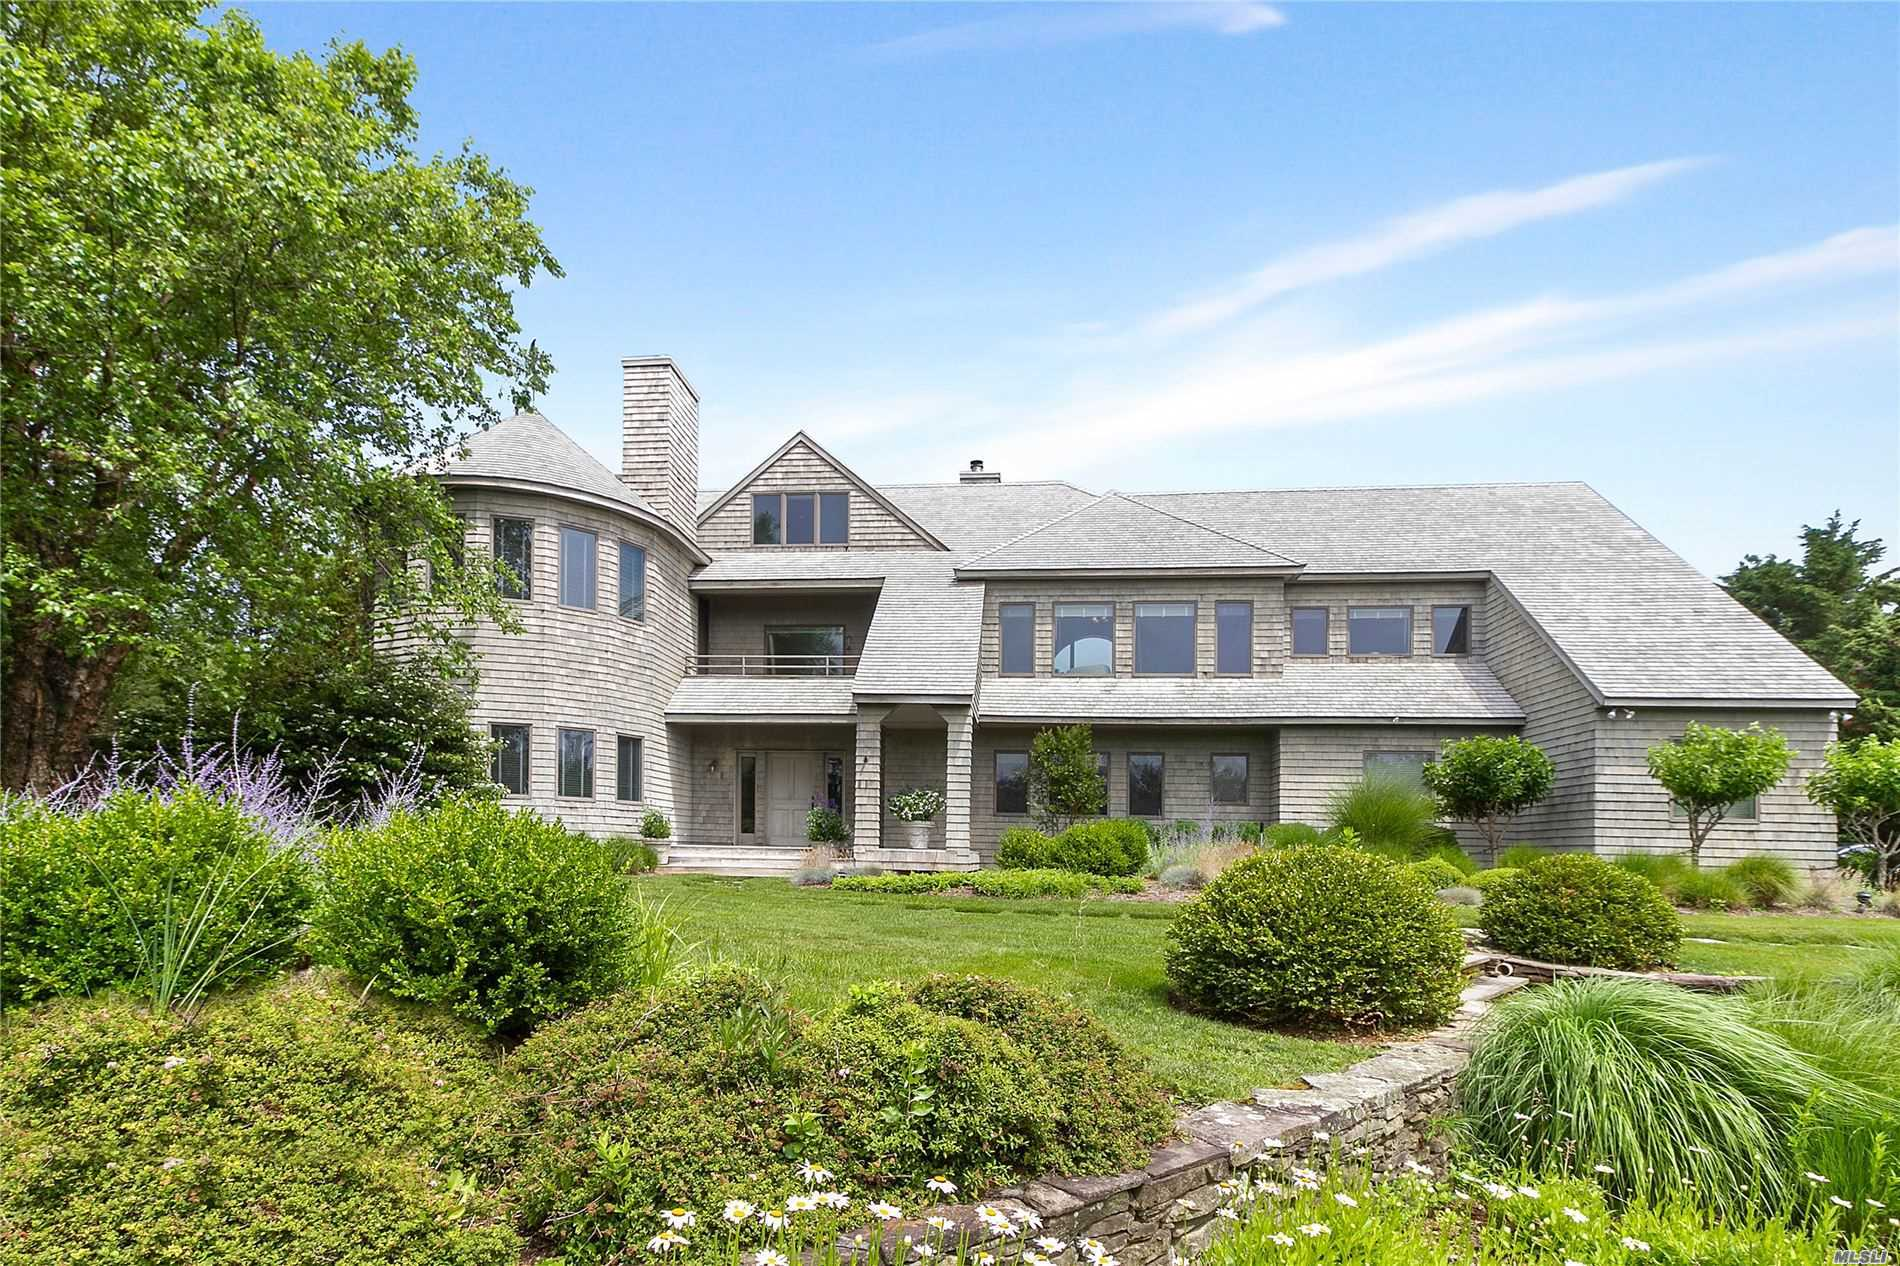 Photo of home for sale at 24 Leaward Ln, Quogue NY